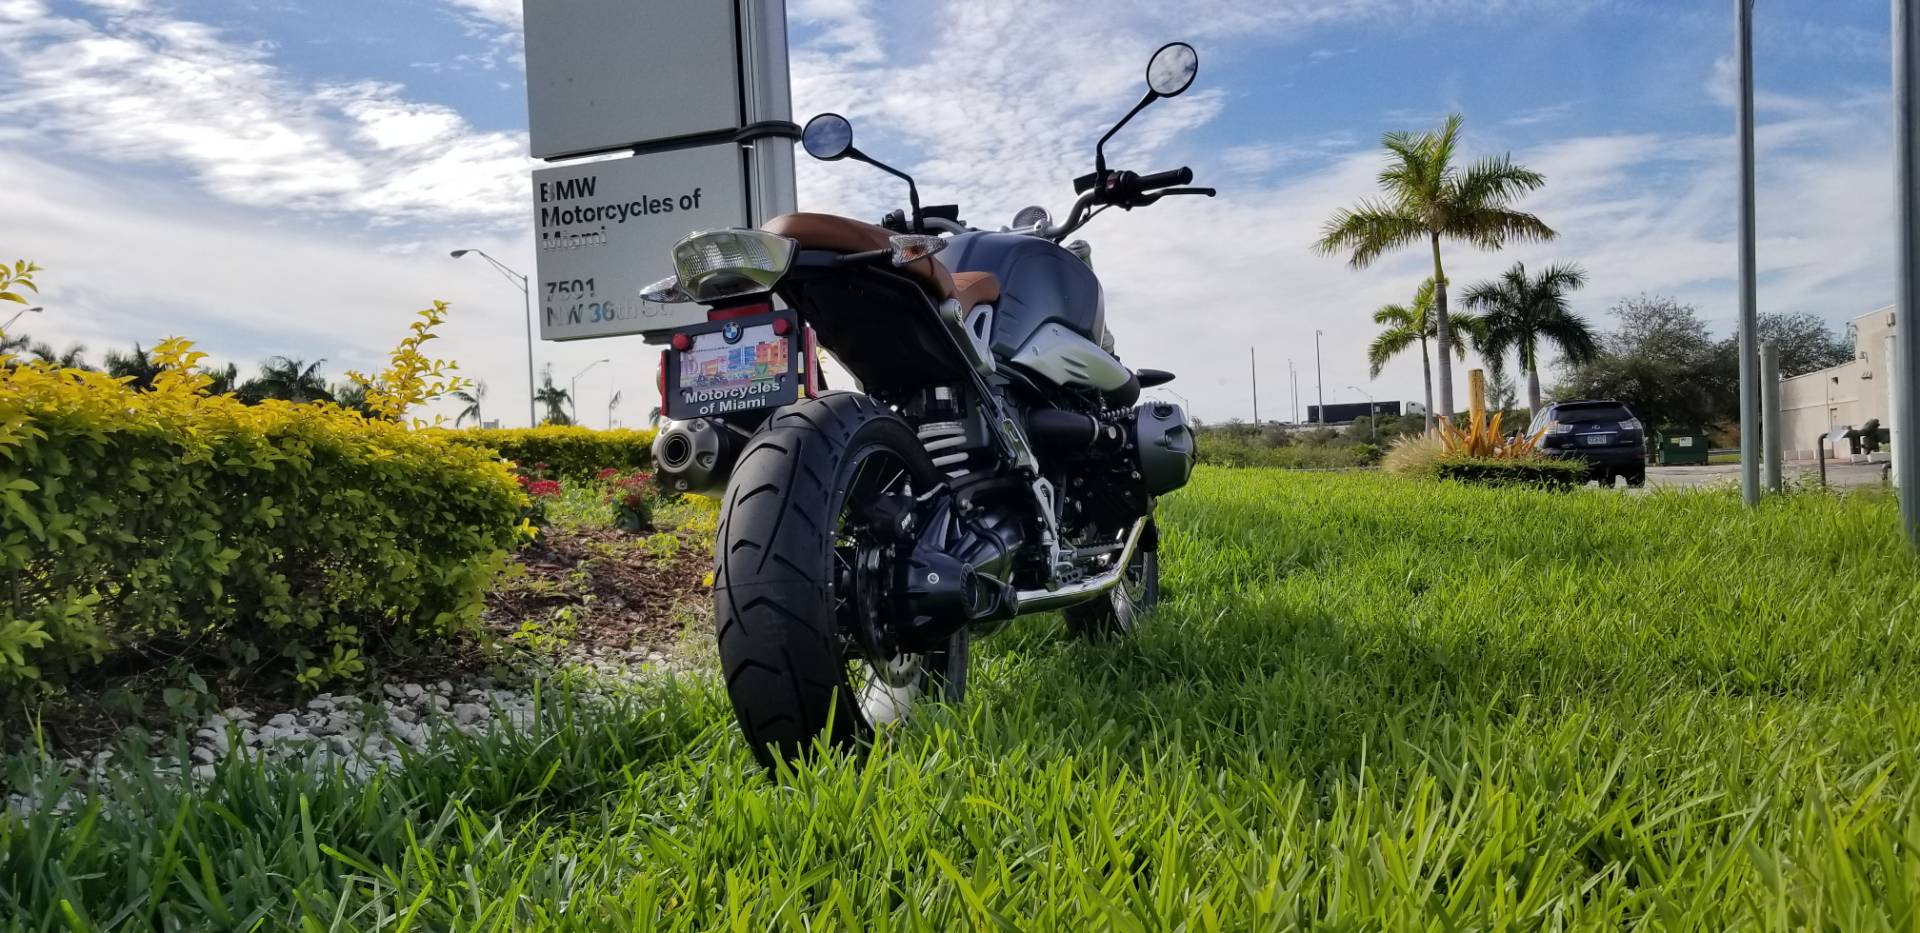 New 2019 BMW R NineT Scrambler for sale, BMW for sale, BMW Motorcycle Café Racer, new BMW Scrambler, Srambler, BMW. BMW Motorcycles of Miami, Motorcycles of Miami - Photo 19